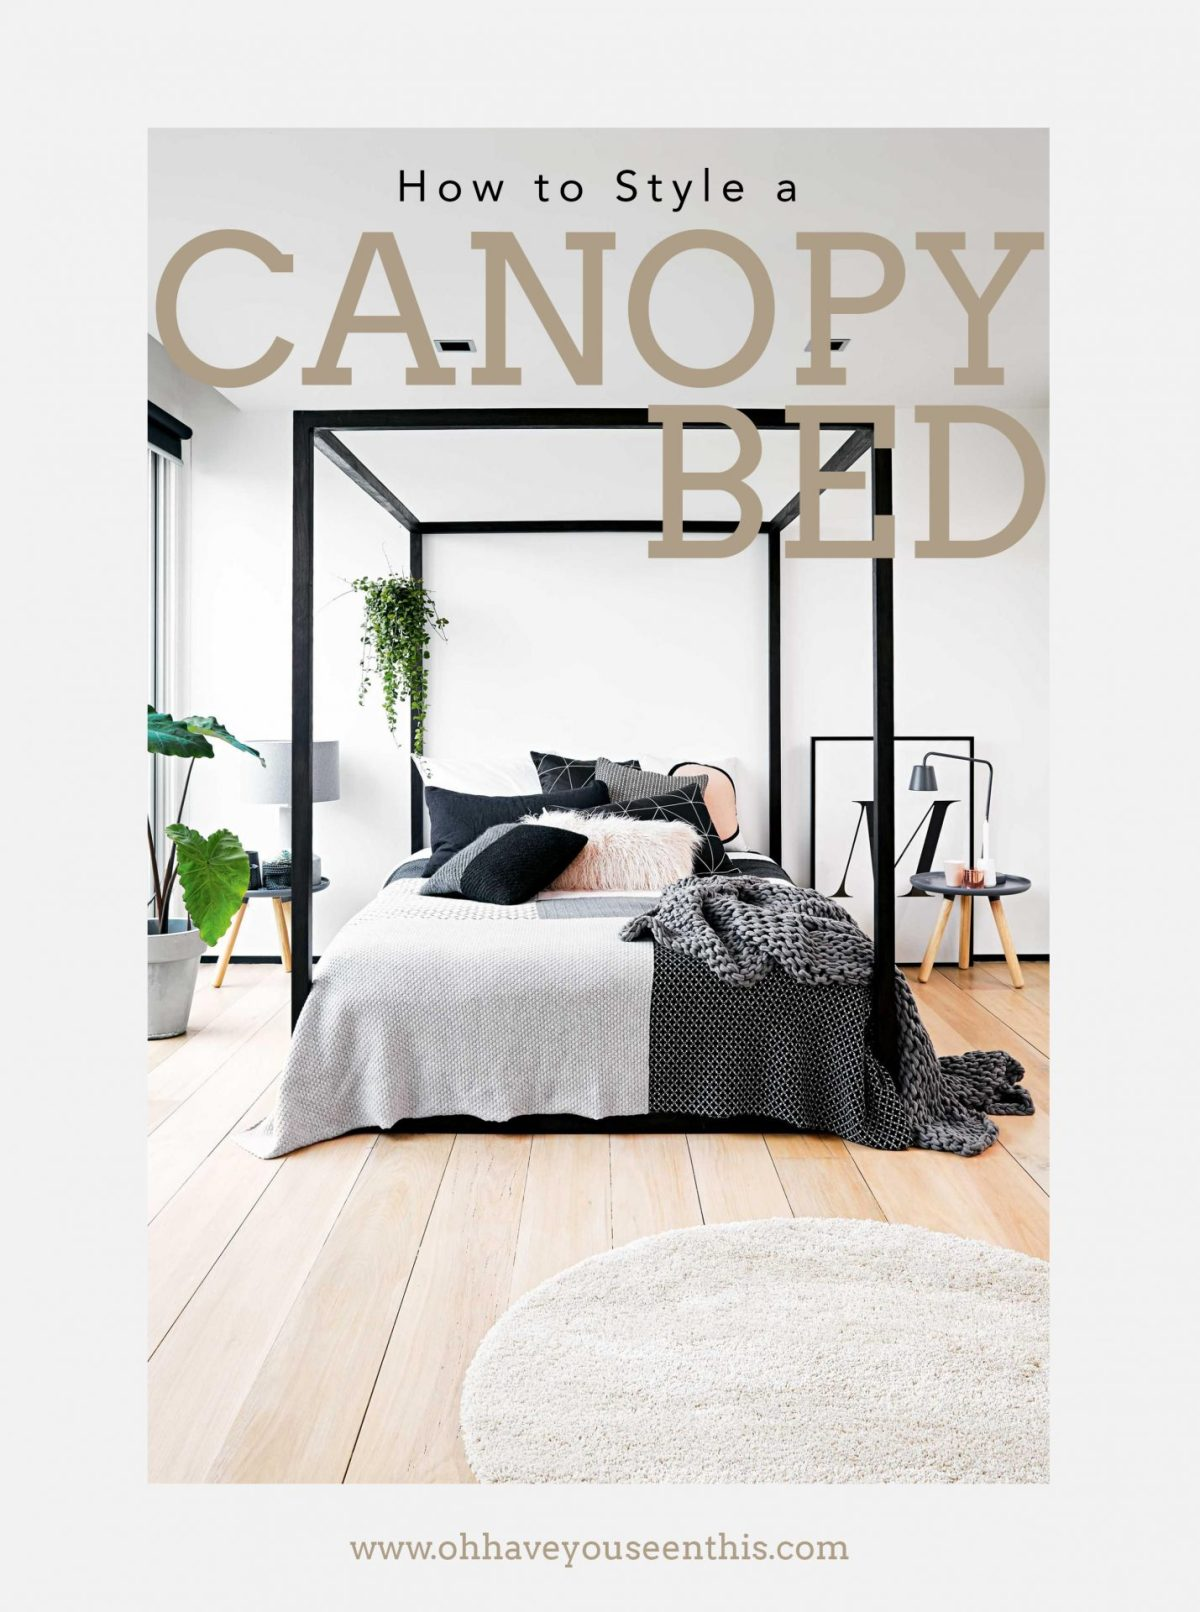 How to Style a Canopy Bed Cover